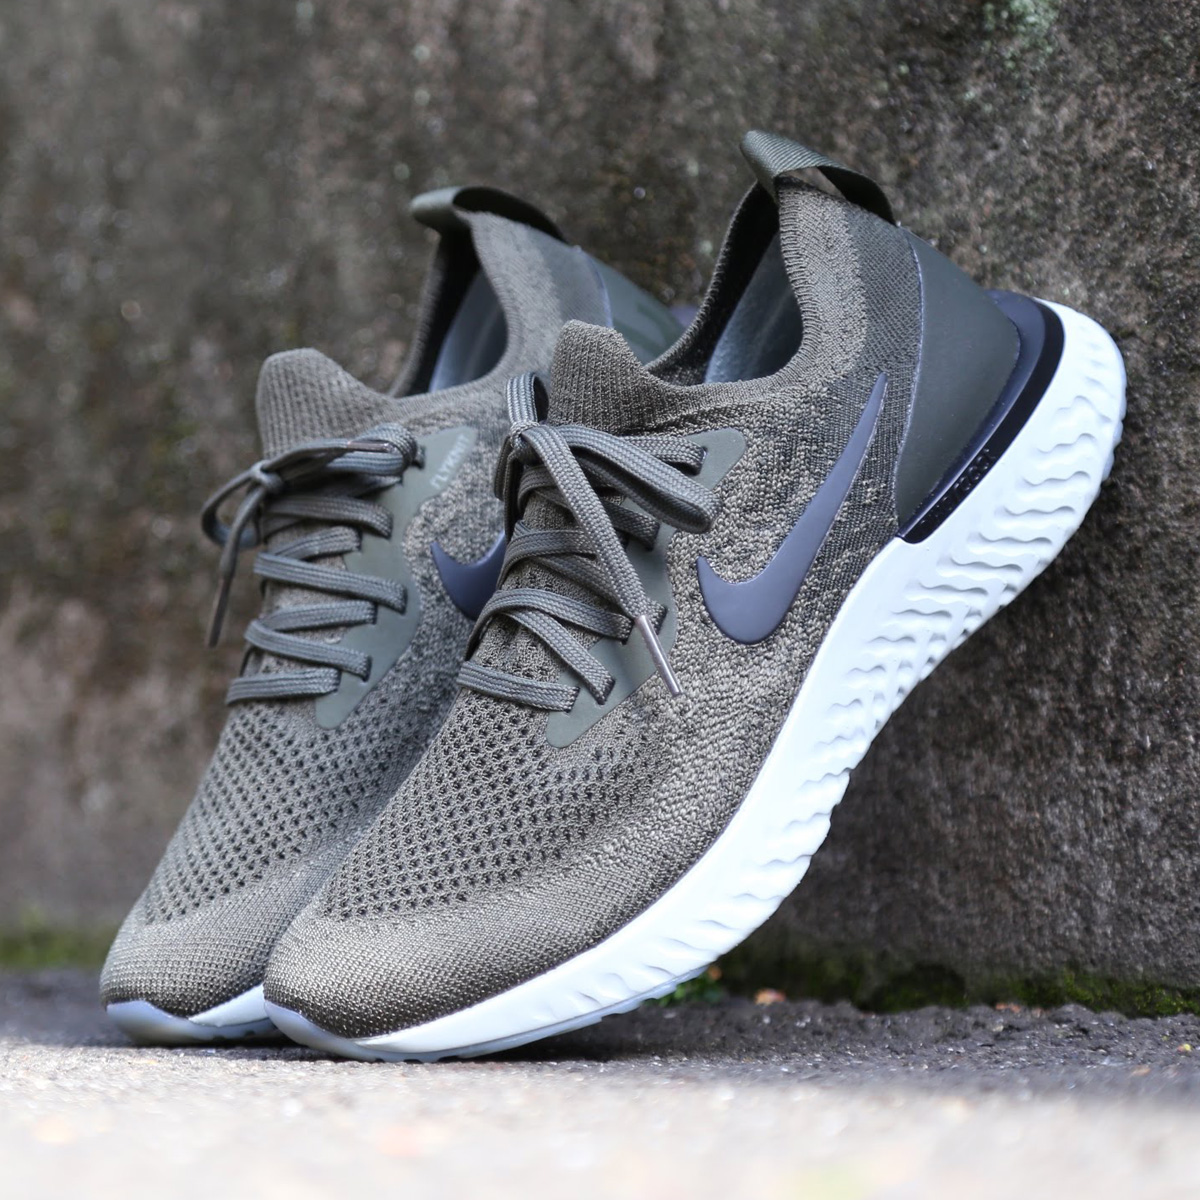 b6139c093281d NIKE WMNS EPIC REACT FLYKNIT (Nike women epic re-act fly knit) (CARGO  KHAKI BLACK-SEQUOIA-LIGHT SILVER) 18SU-S